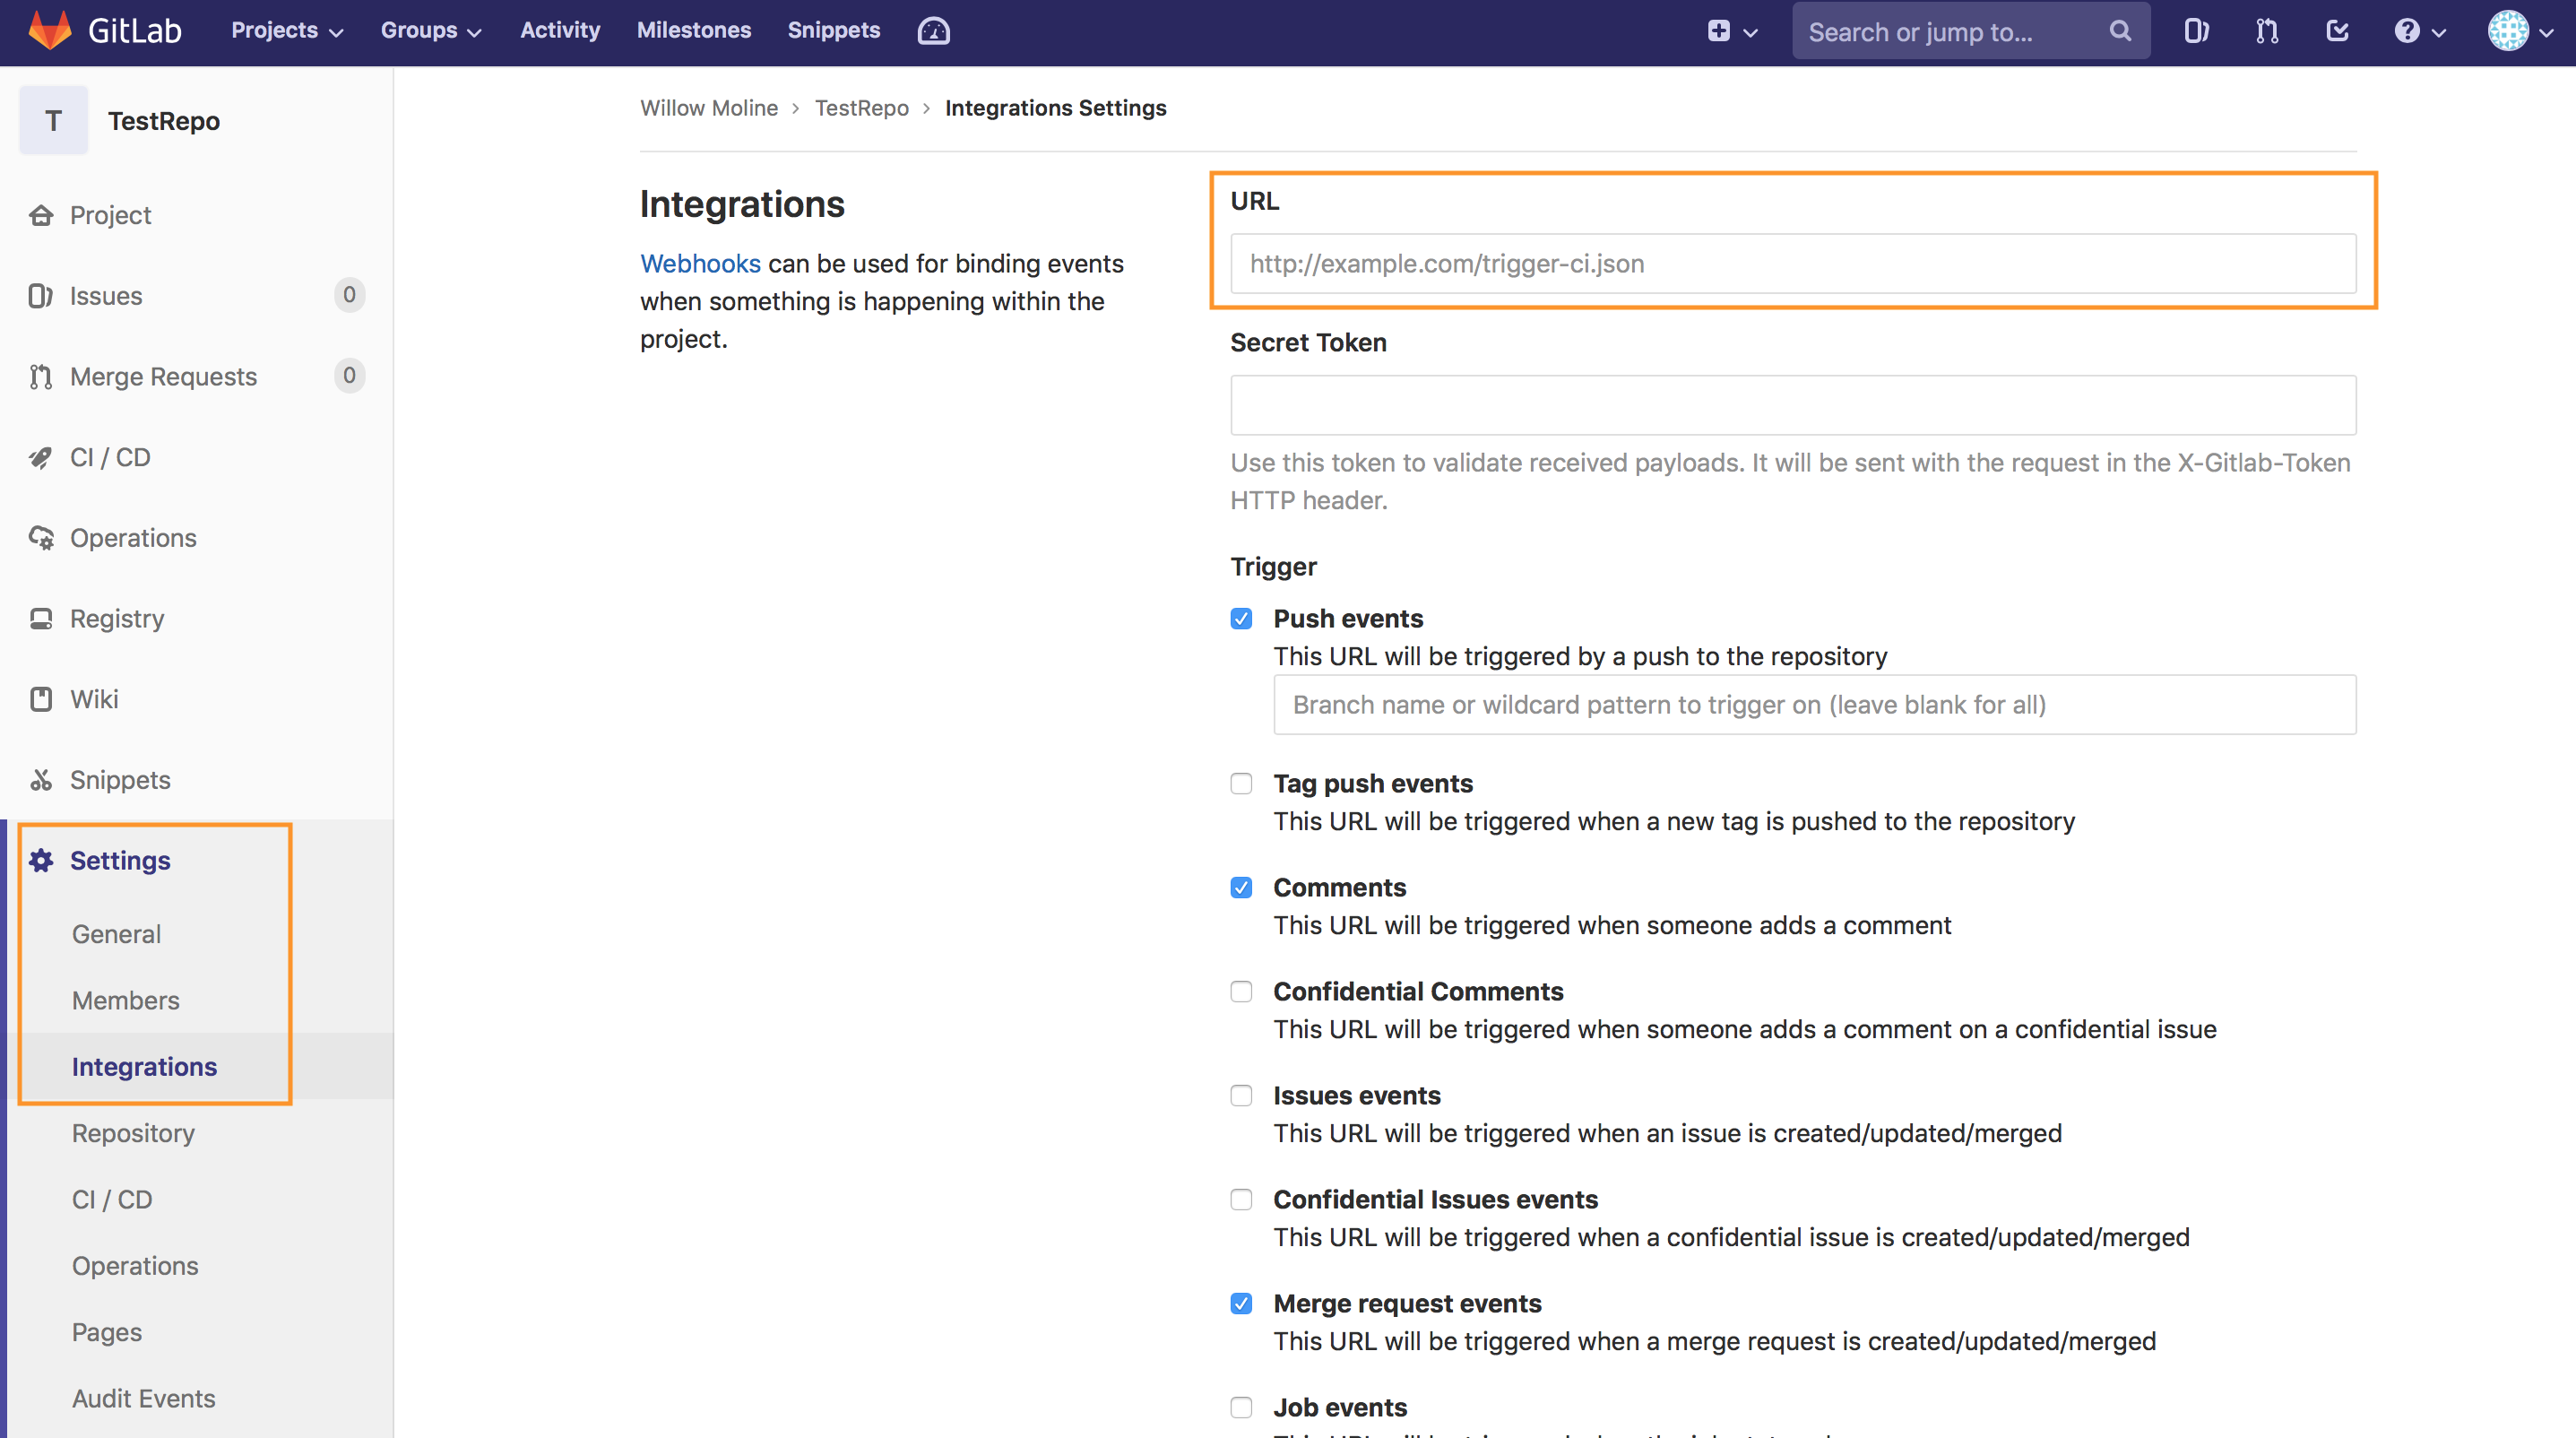 Clubhouse_GitLab_Integration_Webhook_Setup.png